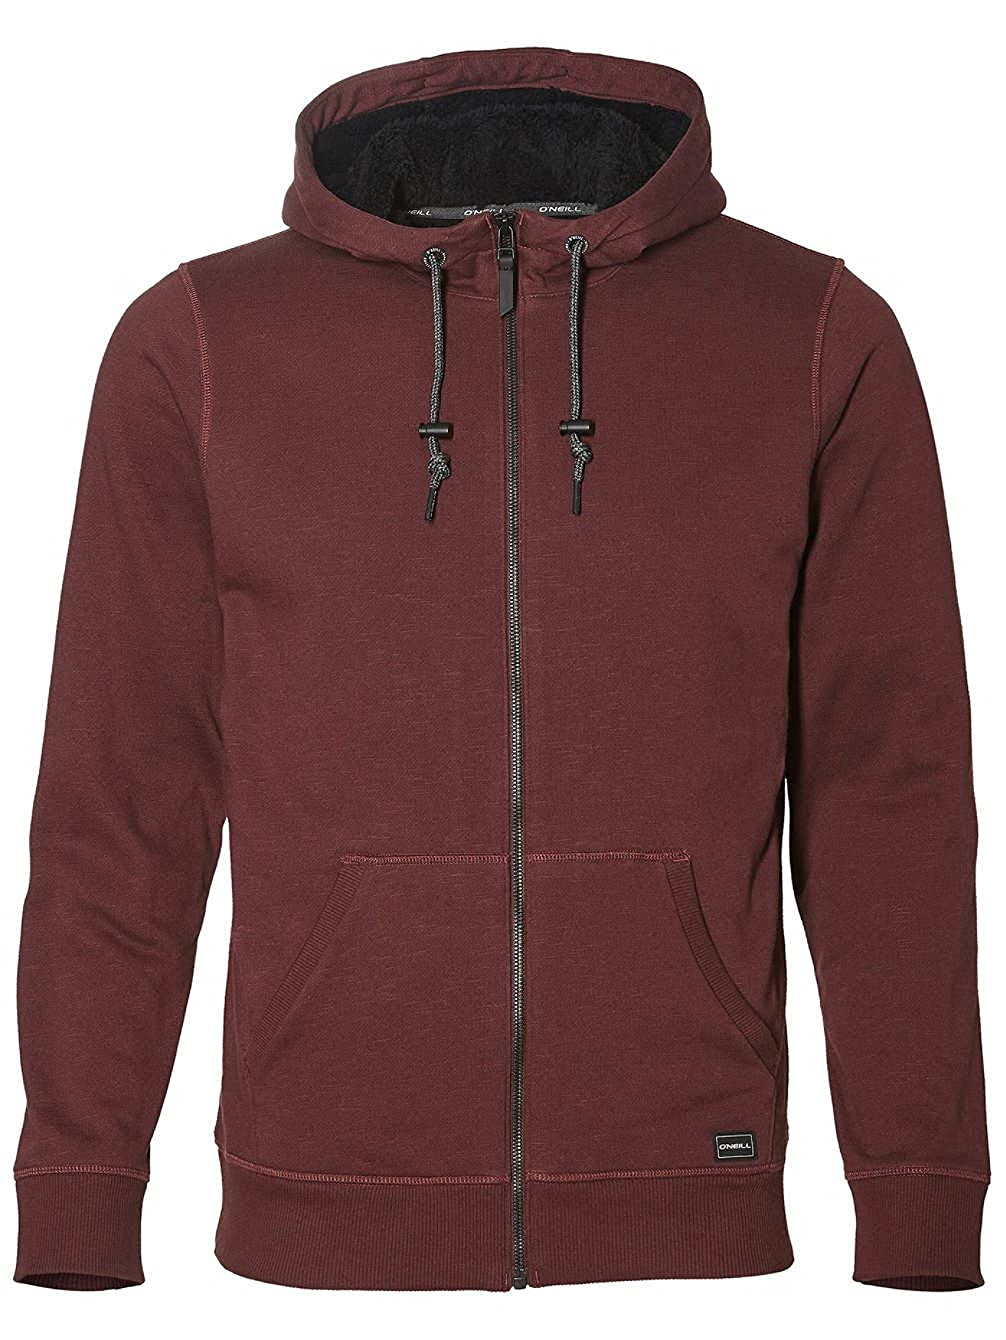 O'Neill Herren Port Royal^O 'Neill Jack 's Base Sherpa Super Fleece M Shirts & Fleece, M